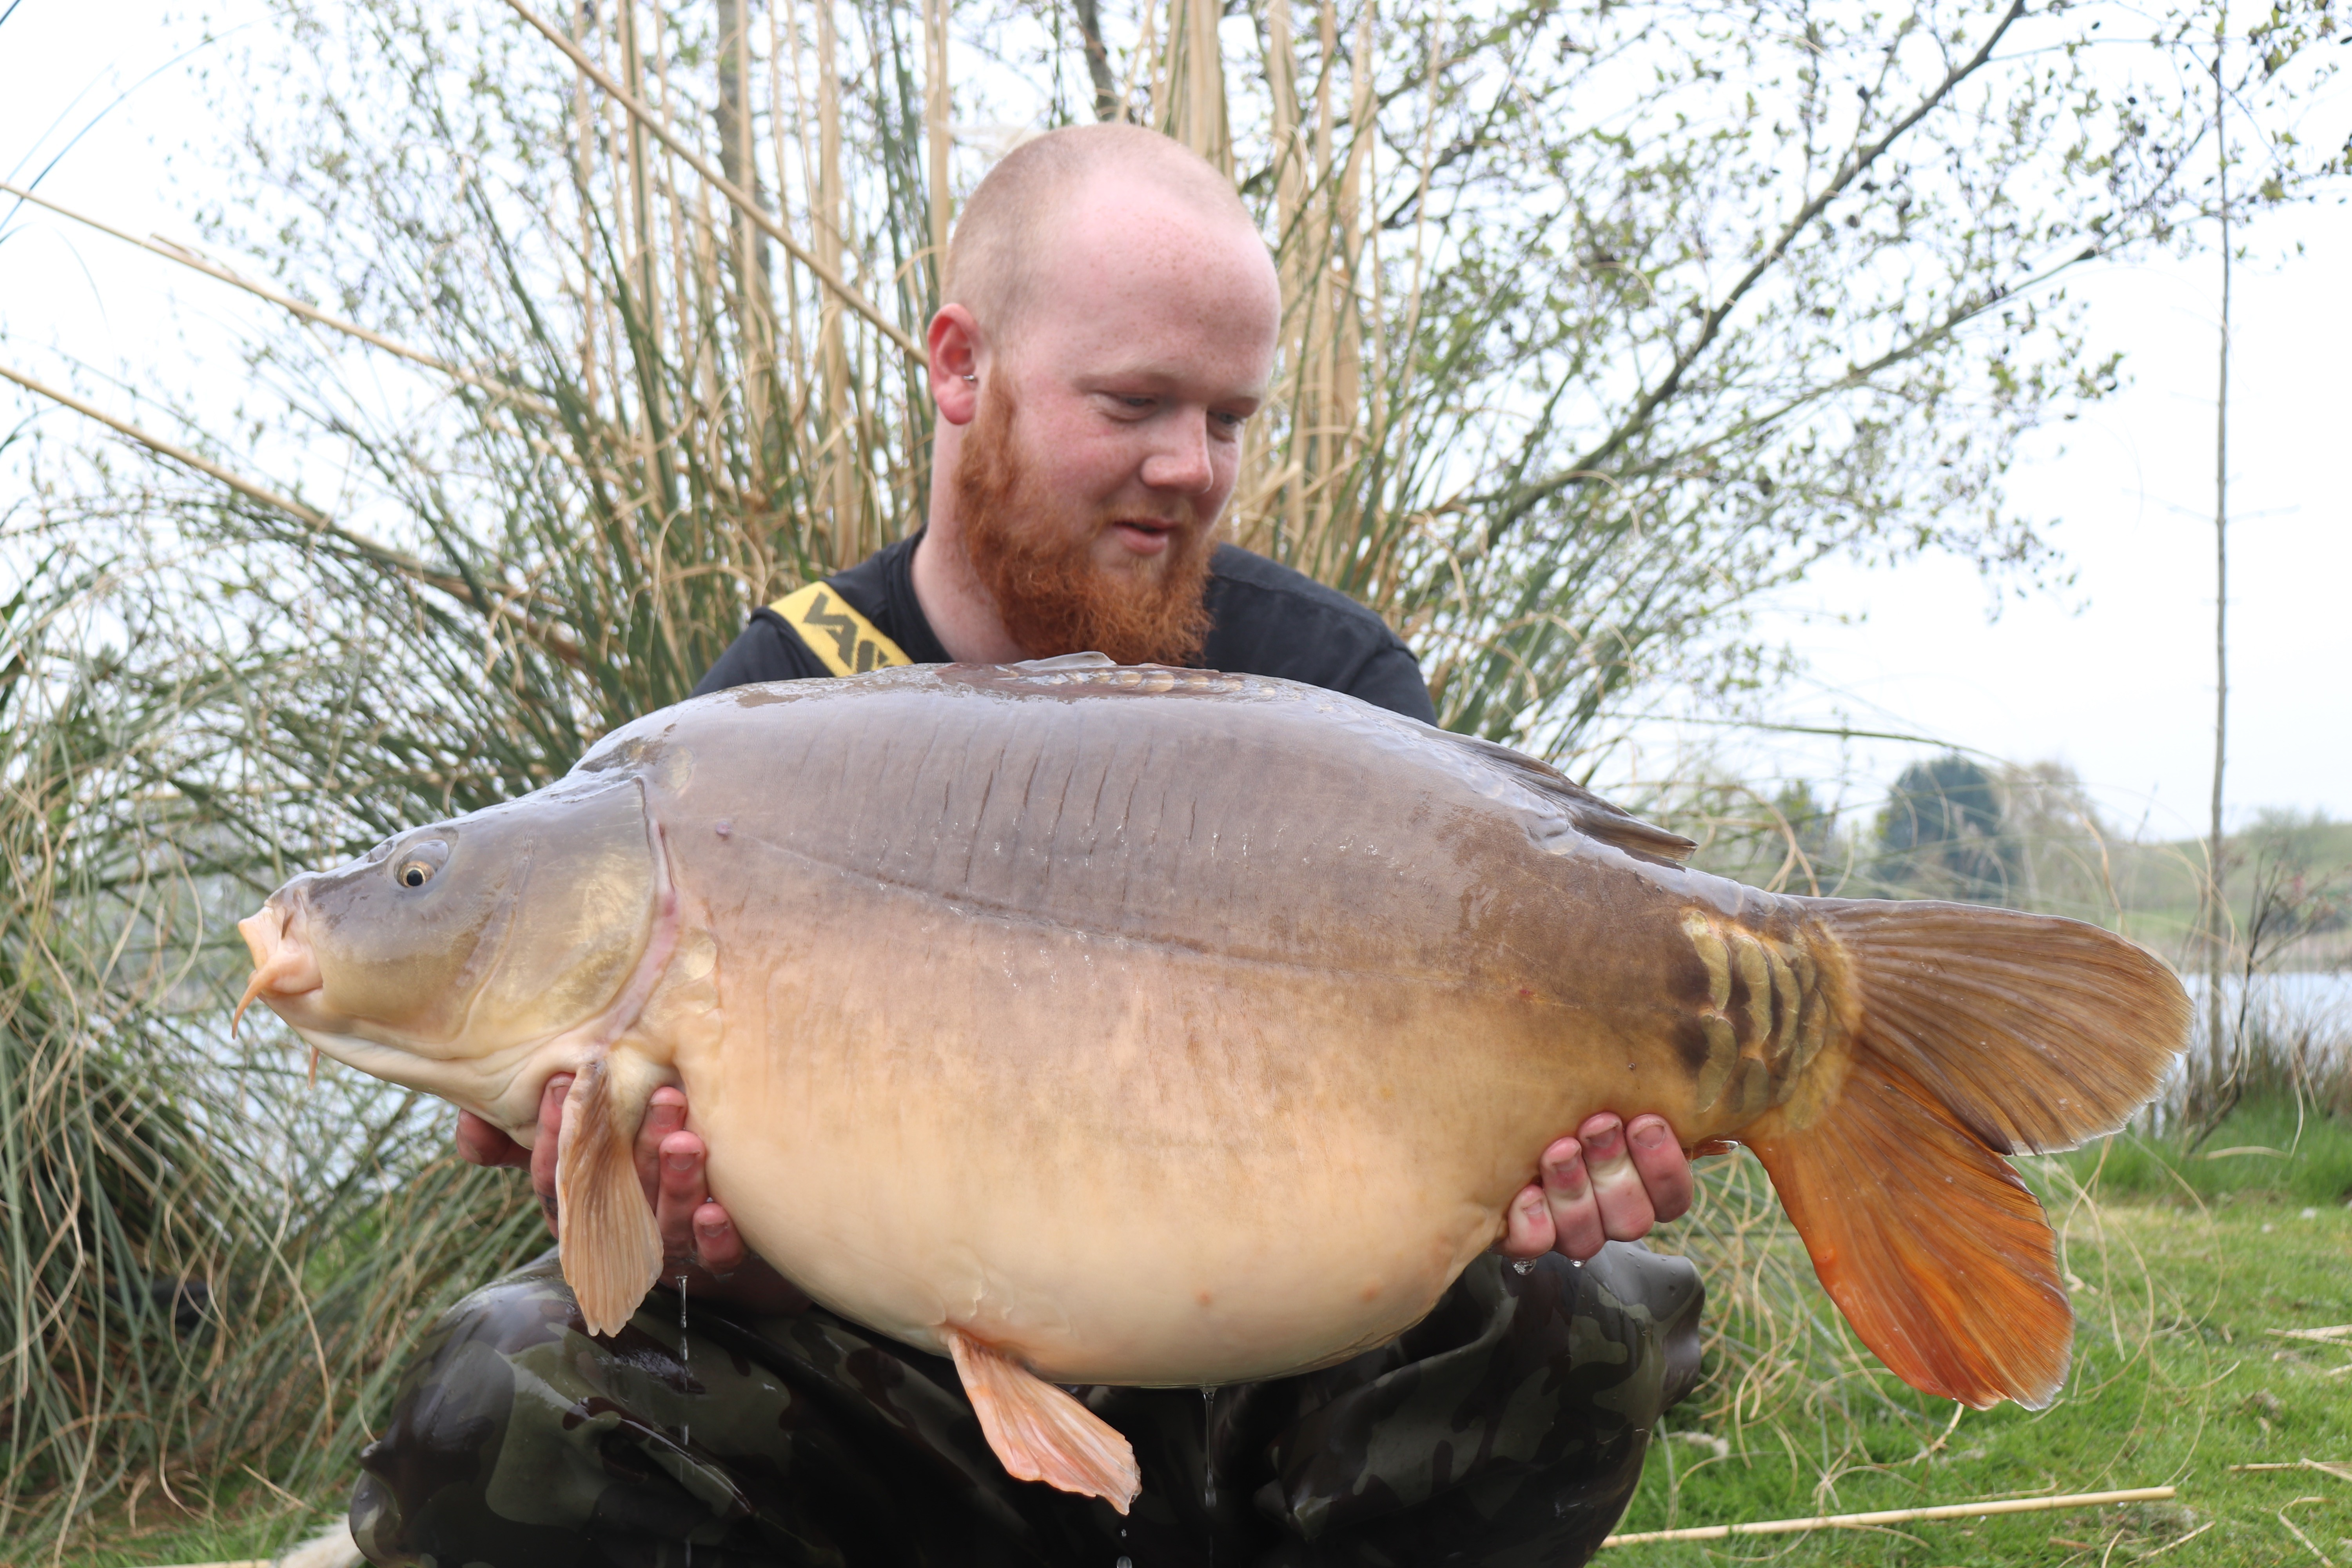 37lb 03oz 'The Pig'  caught on 5 kilo of Maize